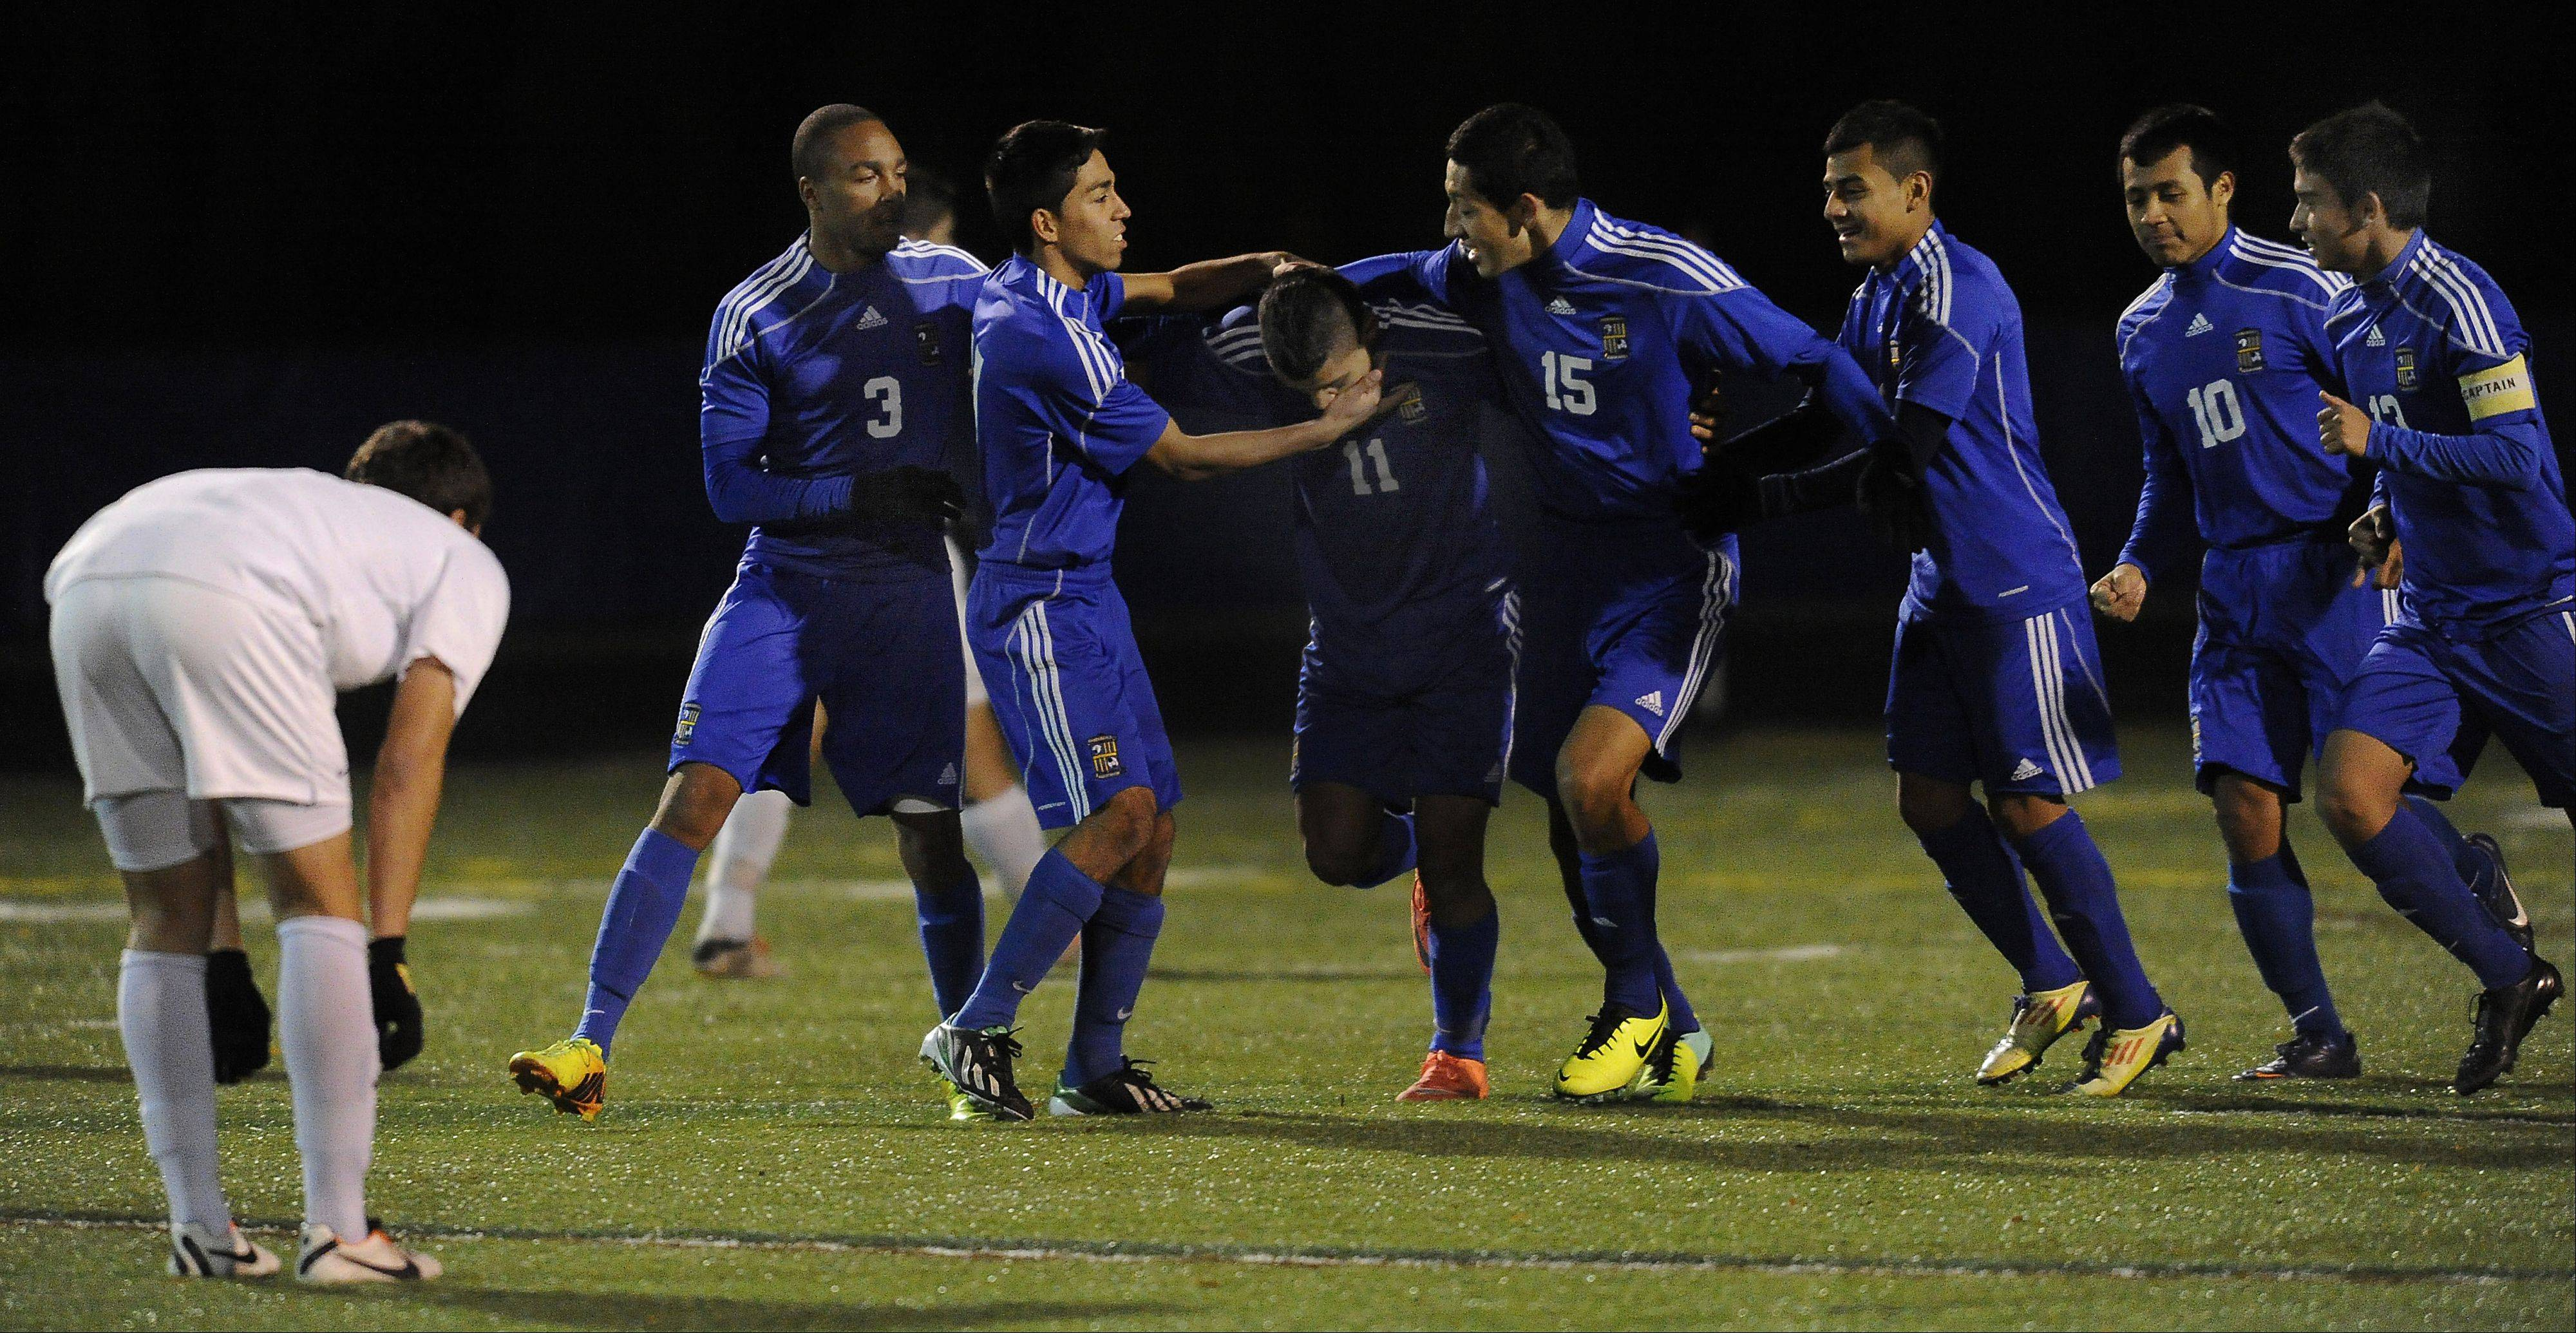 Wheeling's Luis Herrera, middle, scores the first goal as his teammates swarm him in the first period in the Class 3A boys soccer state semifinals at Hoffman Estates on Friday.